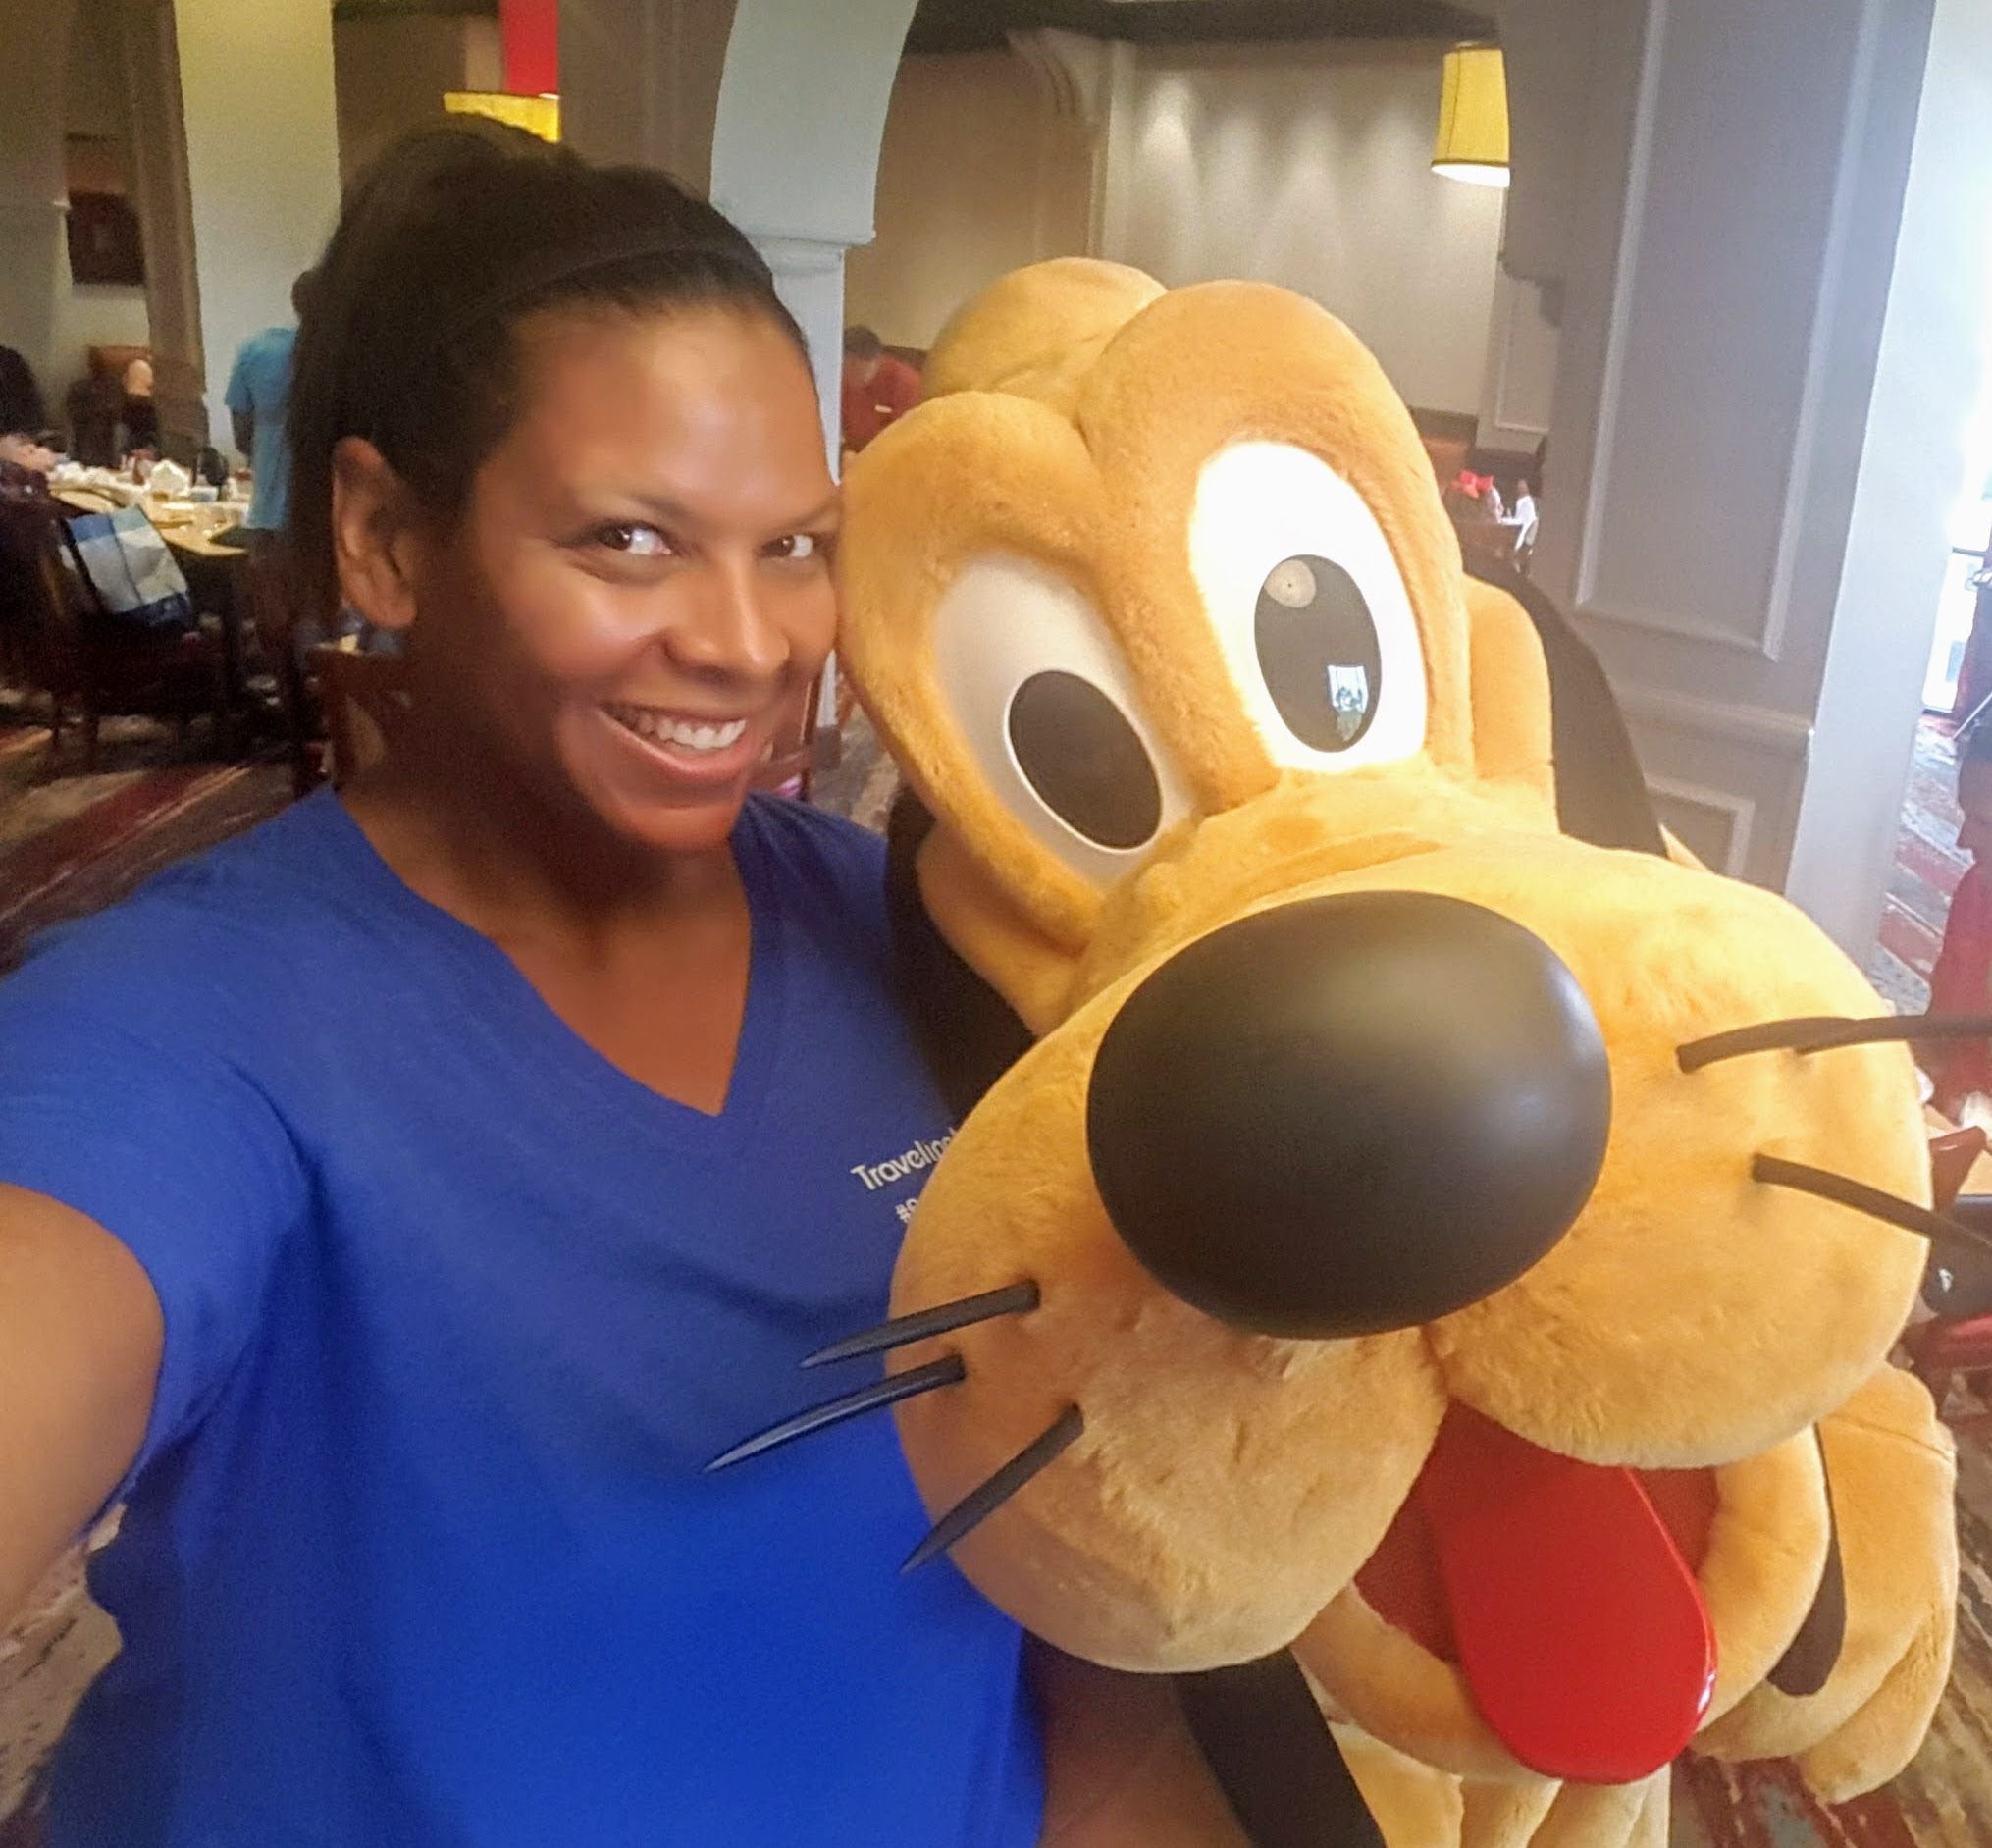 You can get quality time with characters at the Wyndham's character breakfast.